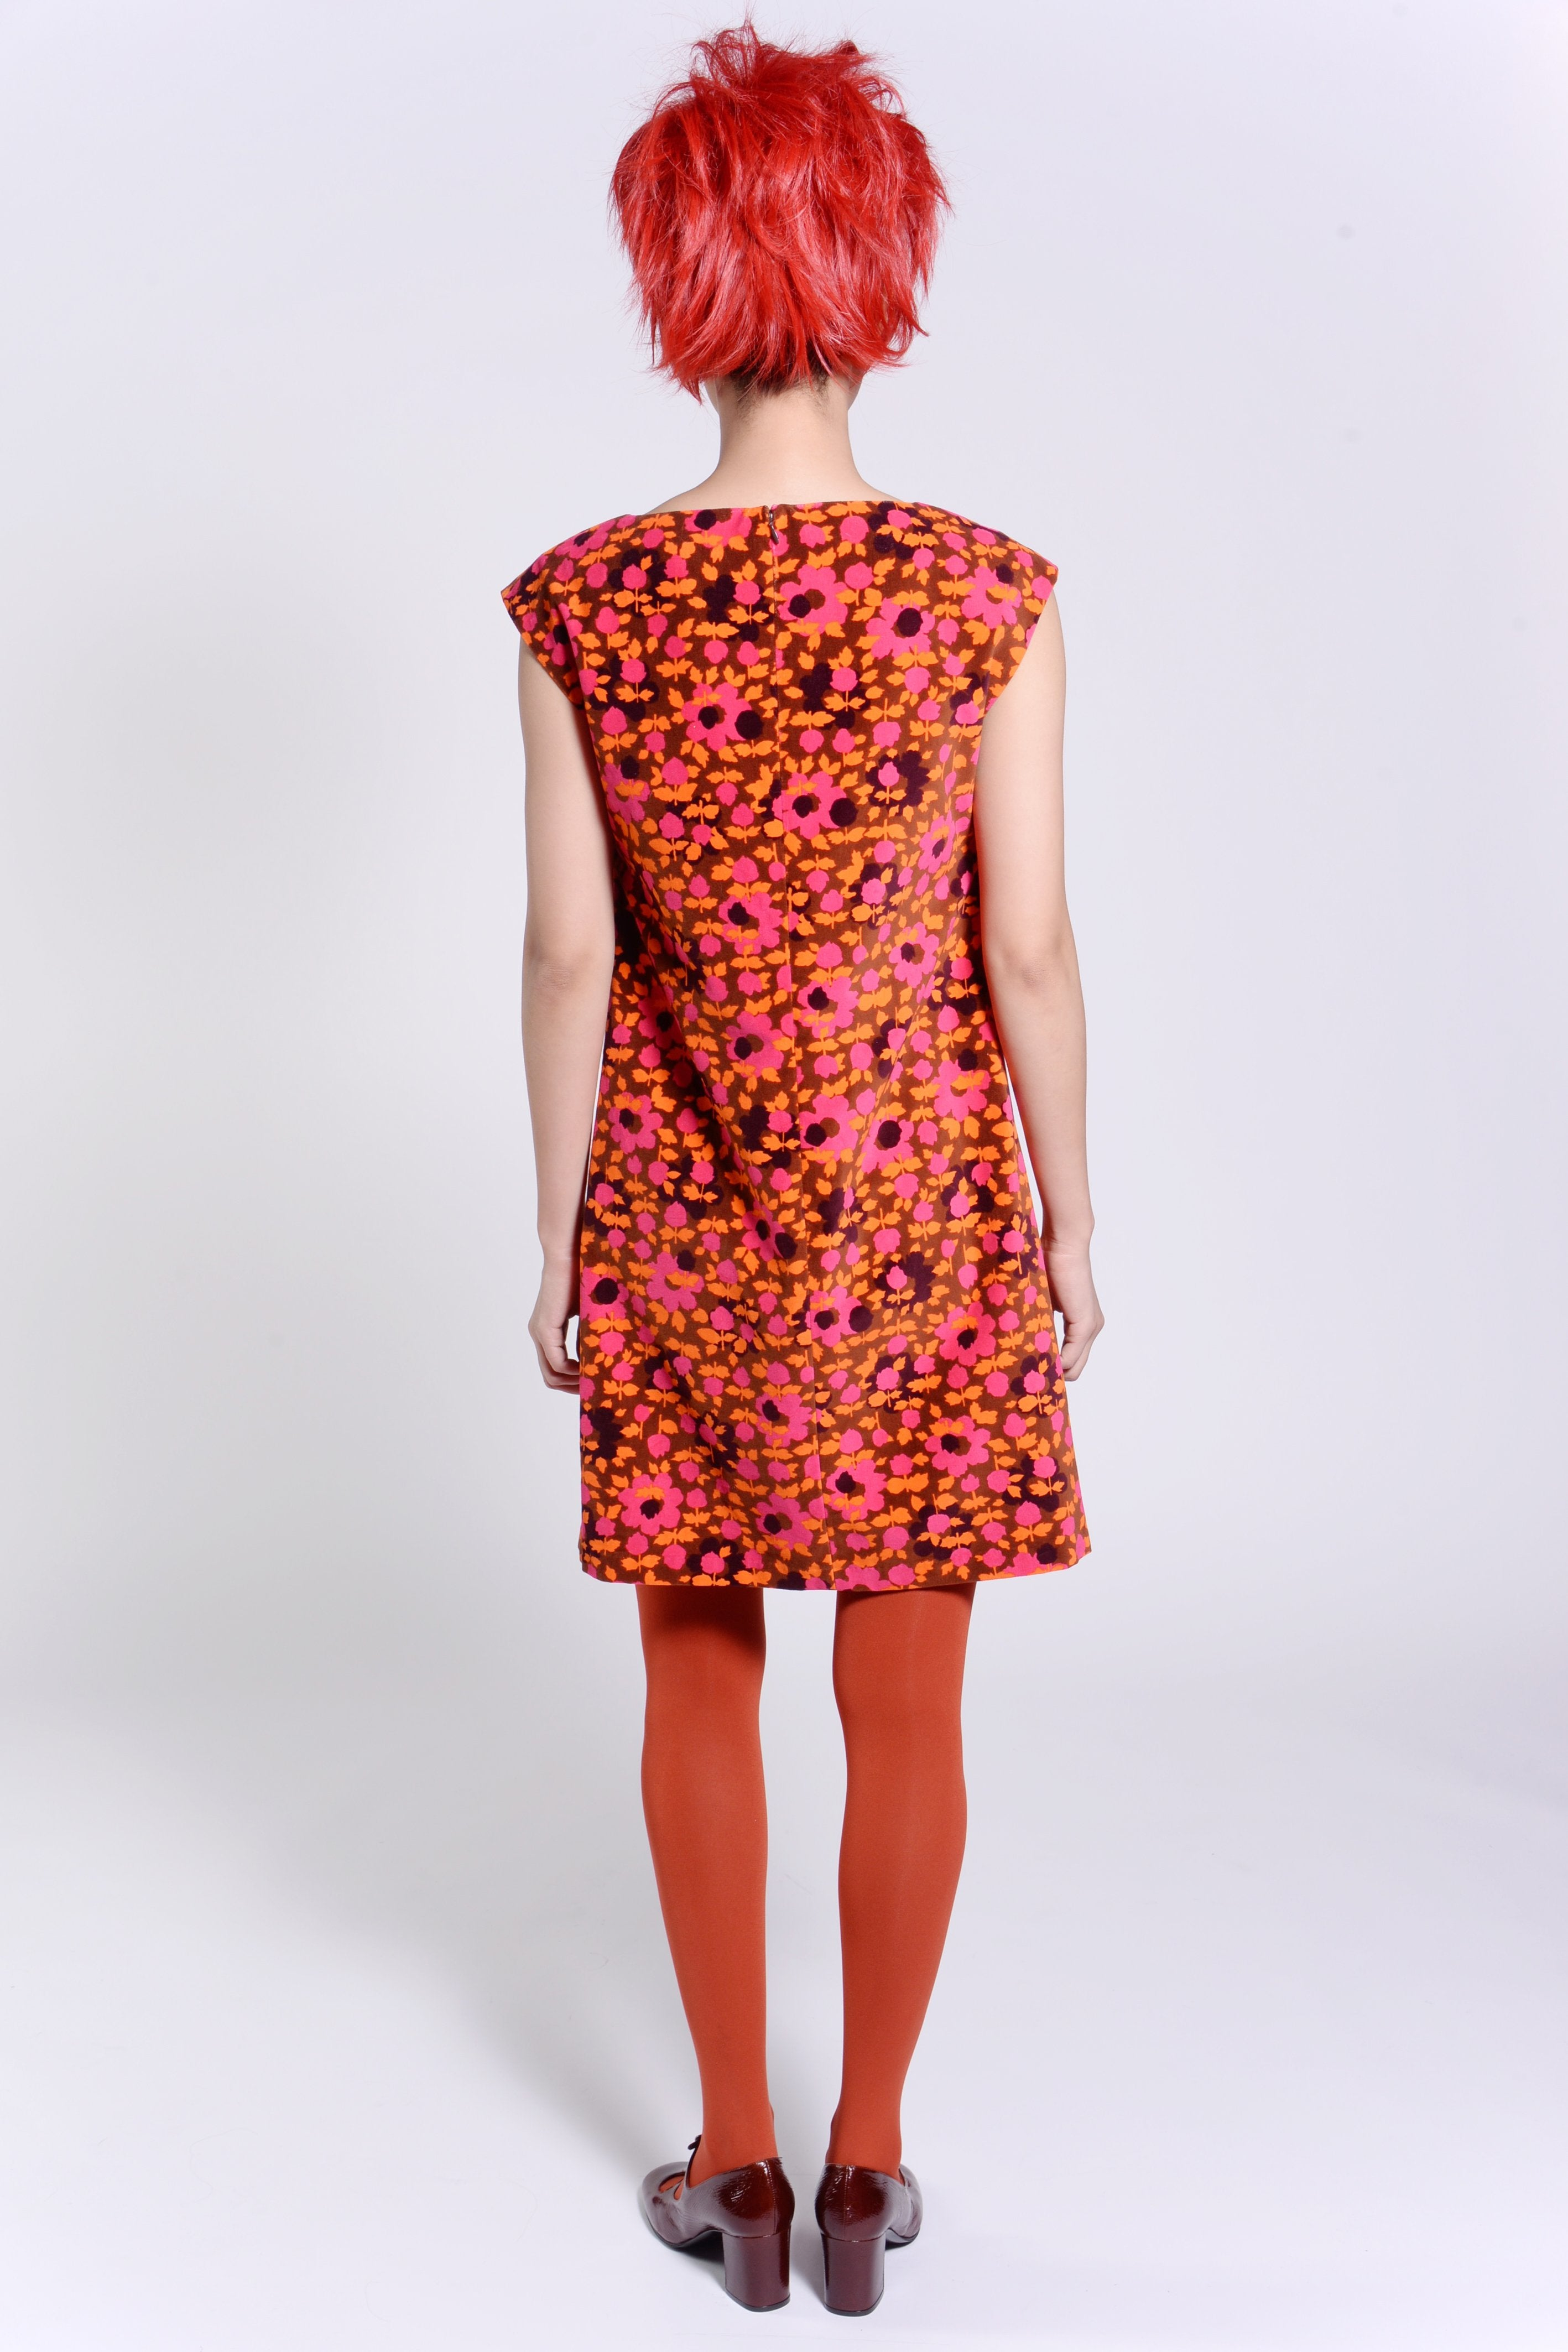 Falling For Flowers Velveteen Tie-Front Dress - Anna Sui